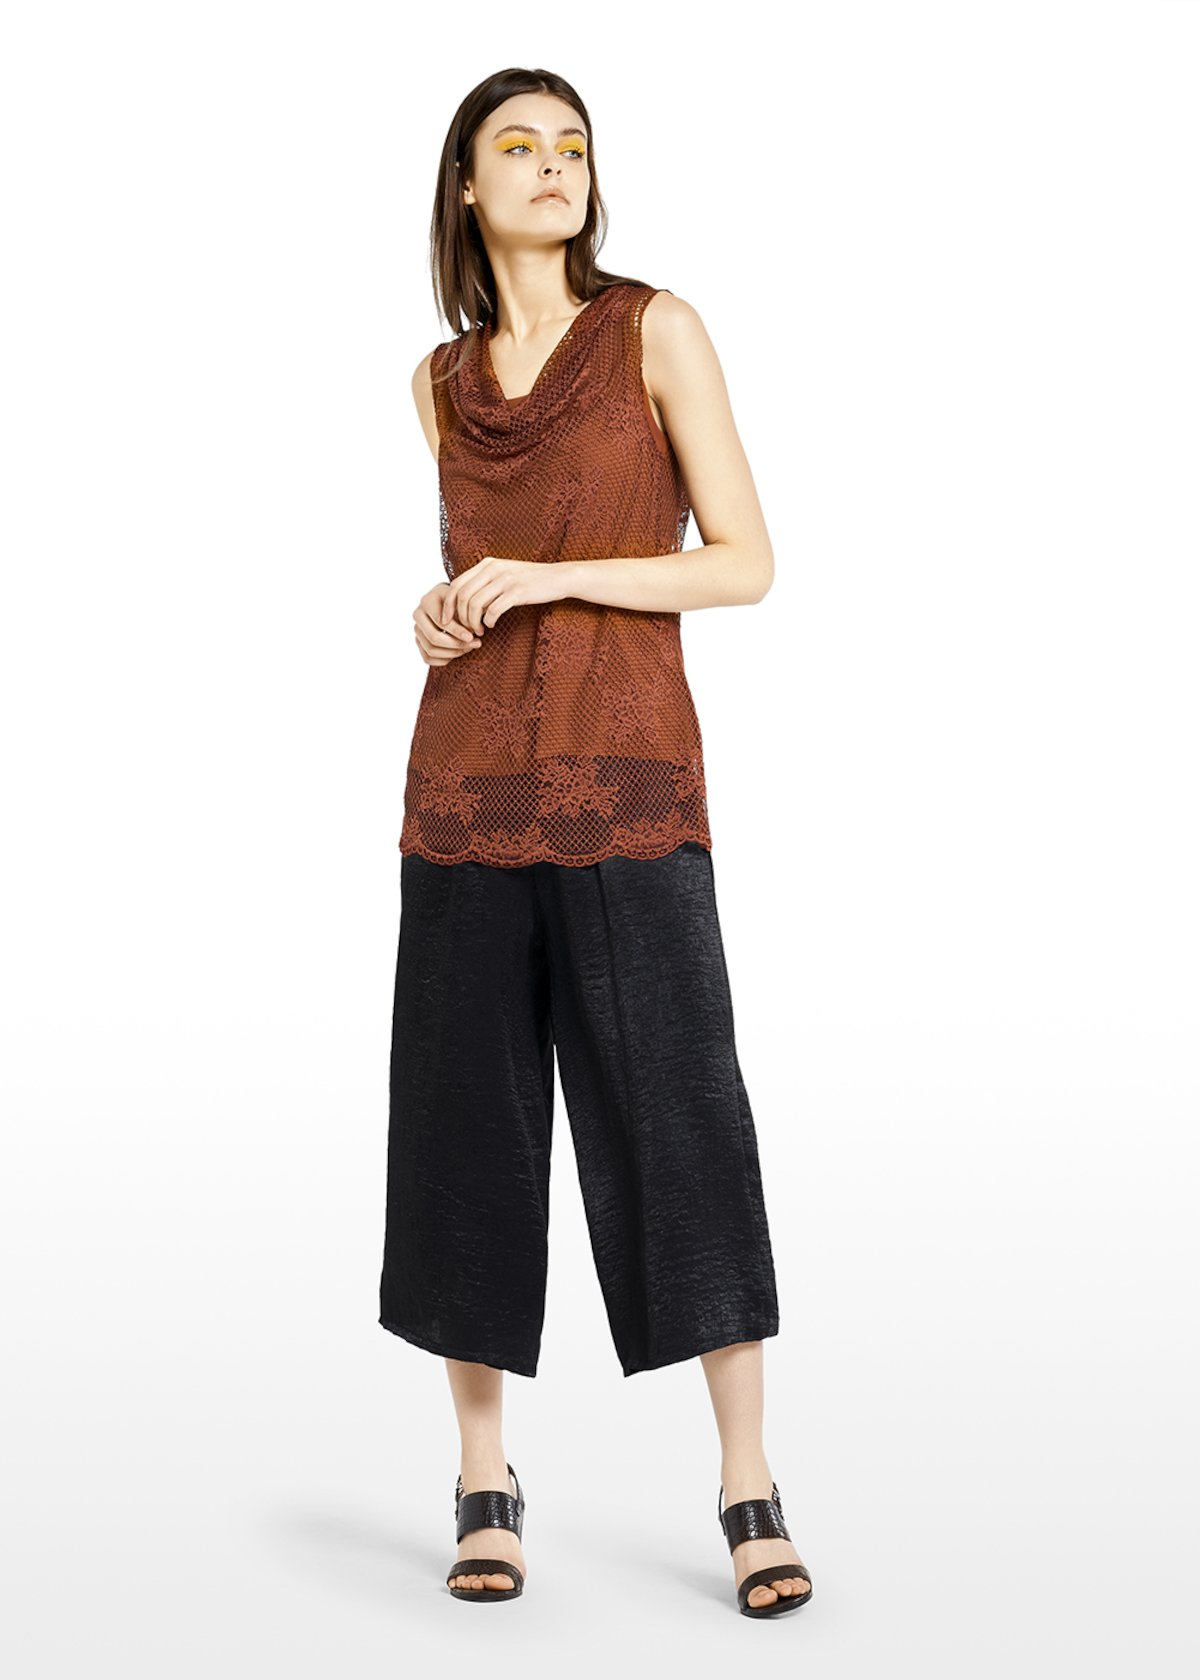 Taryn lace top with flowers processing - Carota - Woman